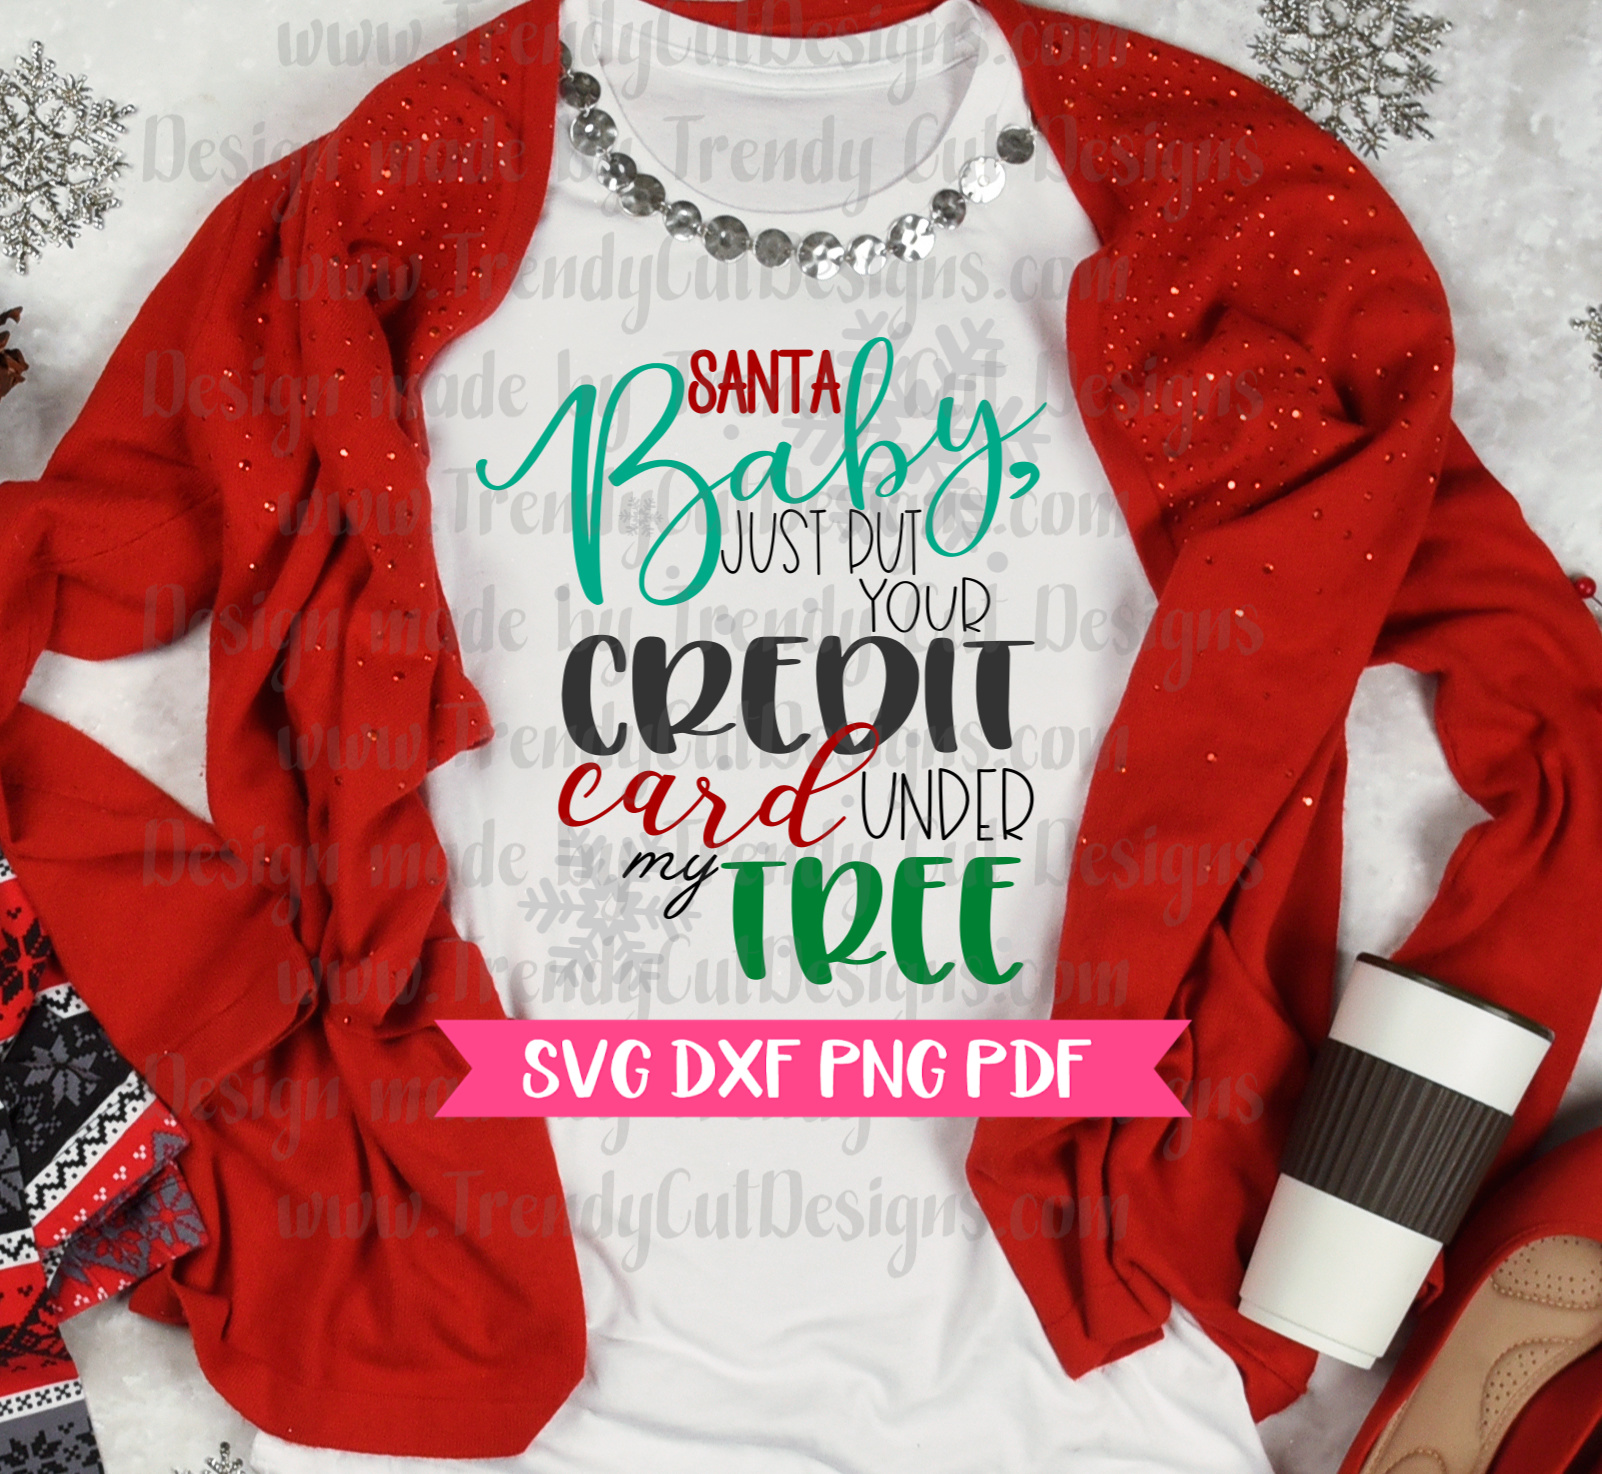 Santa Baby Just put your credit card under the Tree SVG example image 2